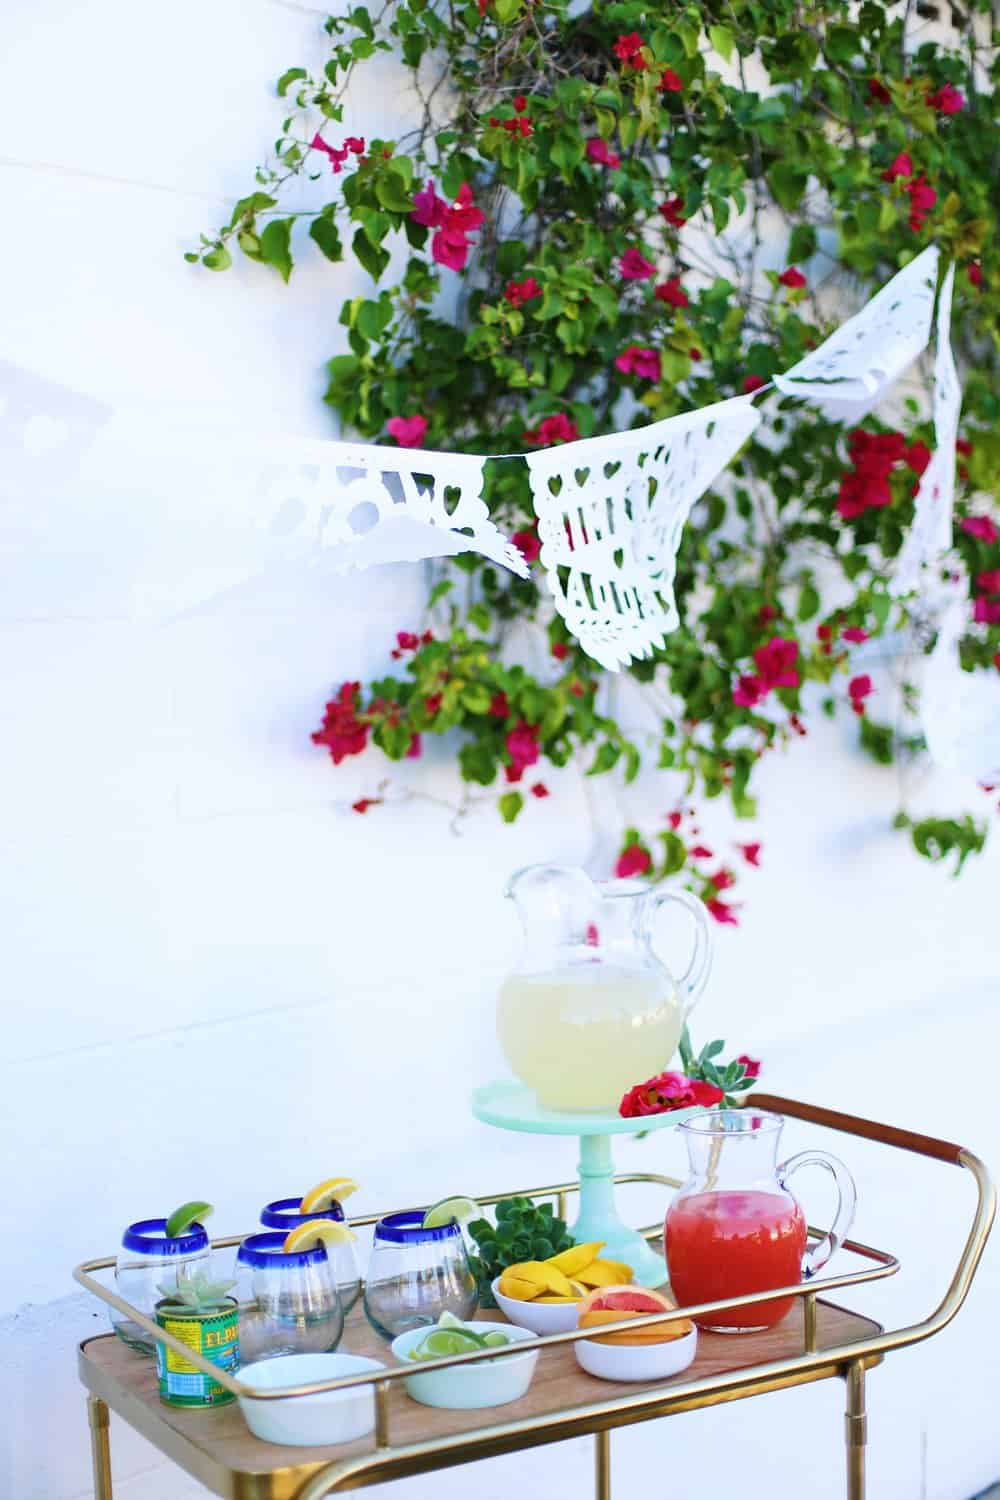 DIY Margarita Bar with juice in pitchers and margarita glasses on a bar cart